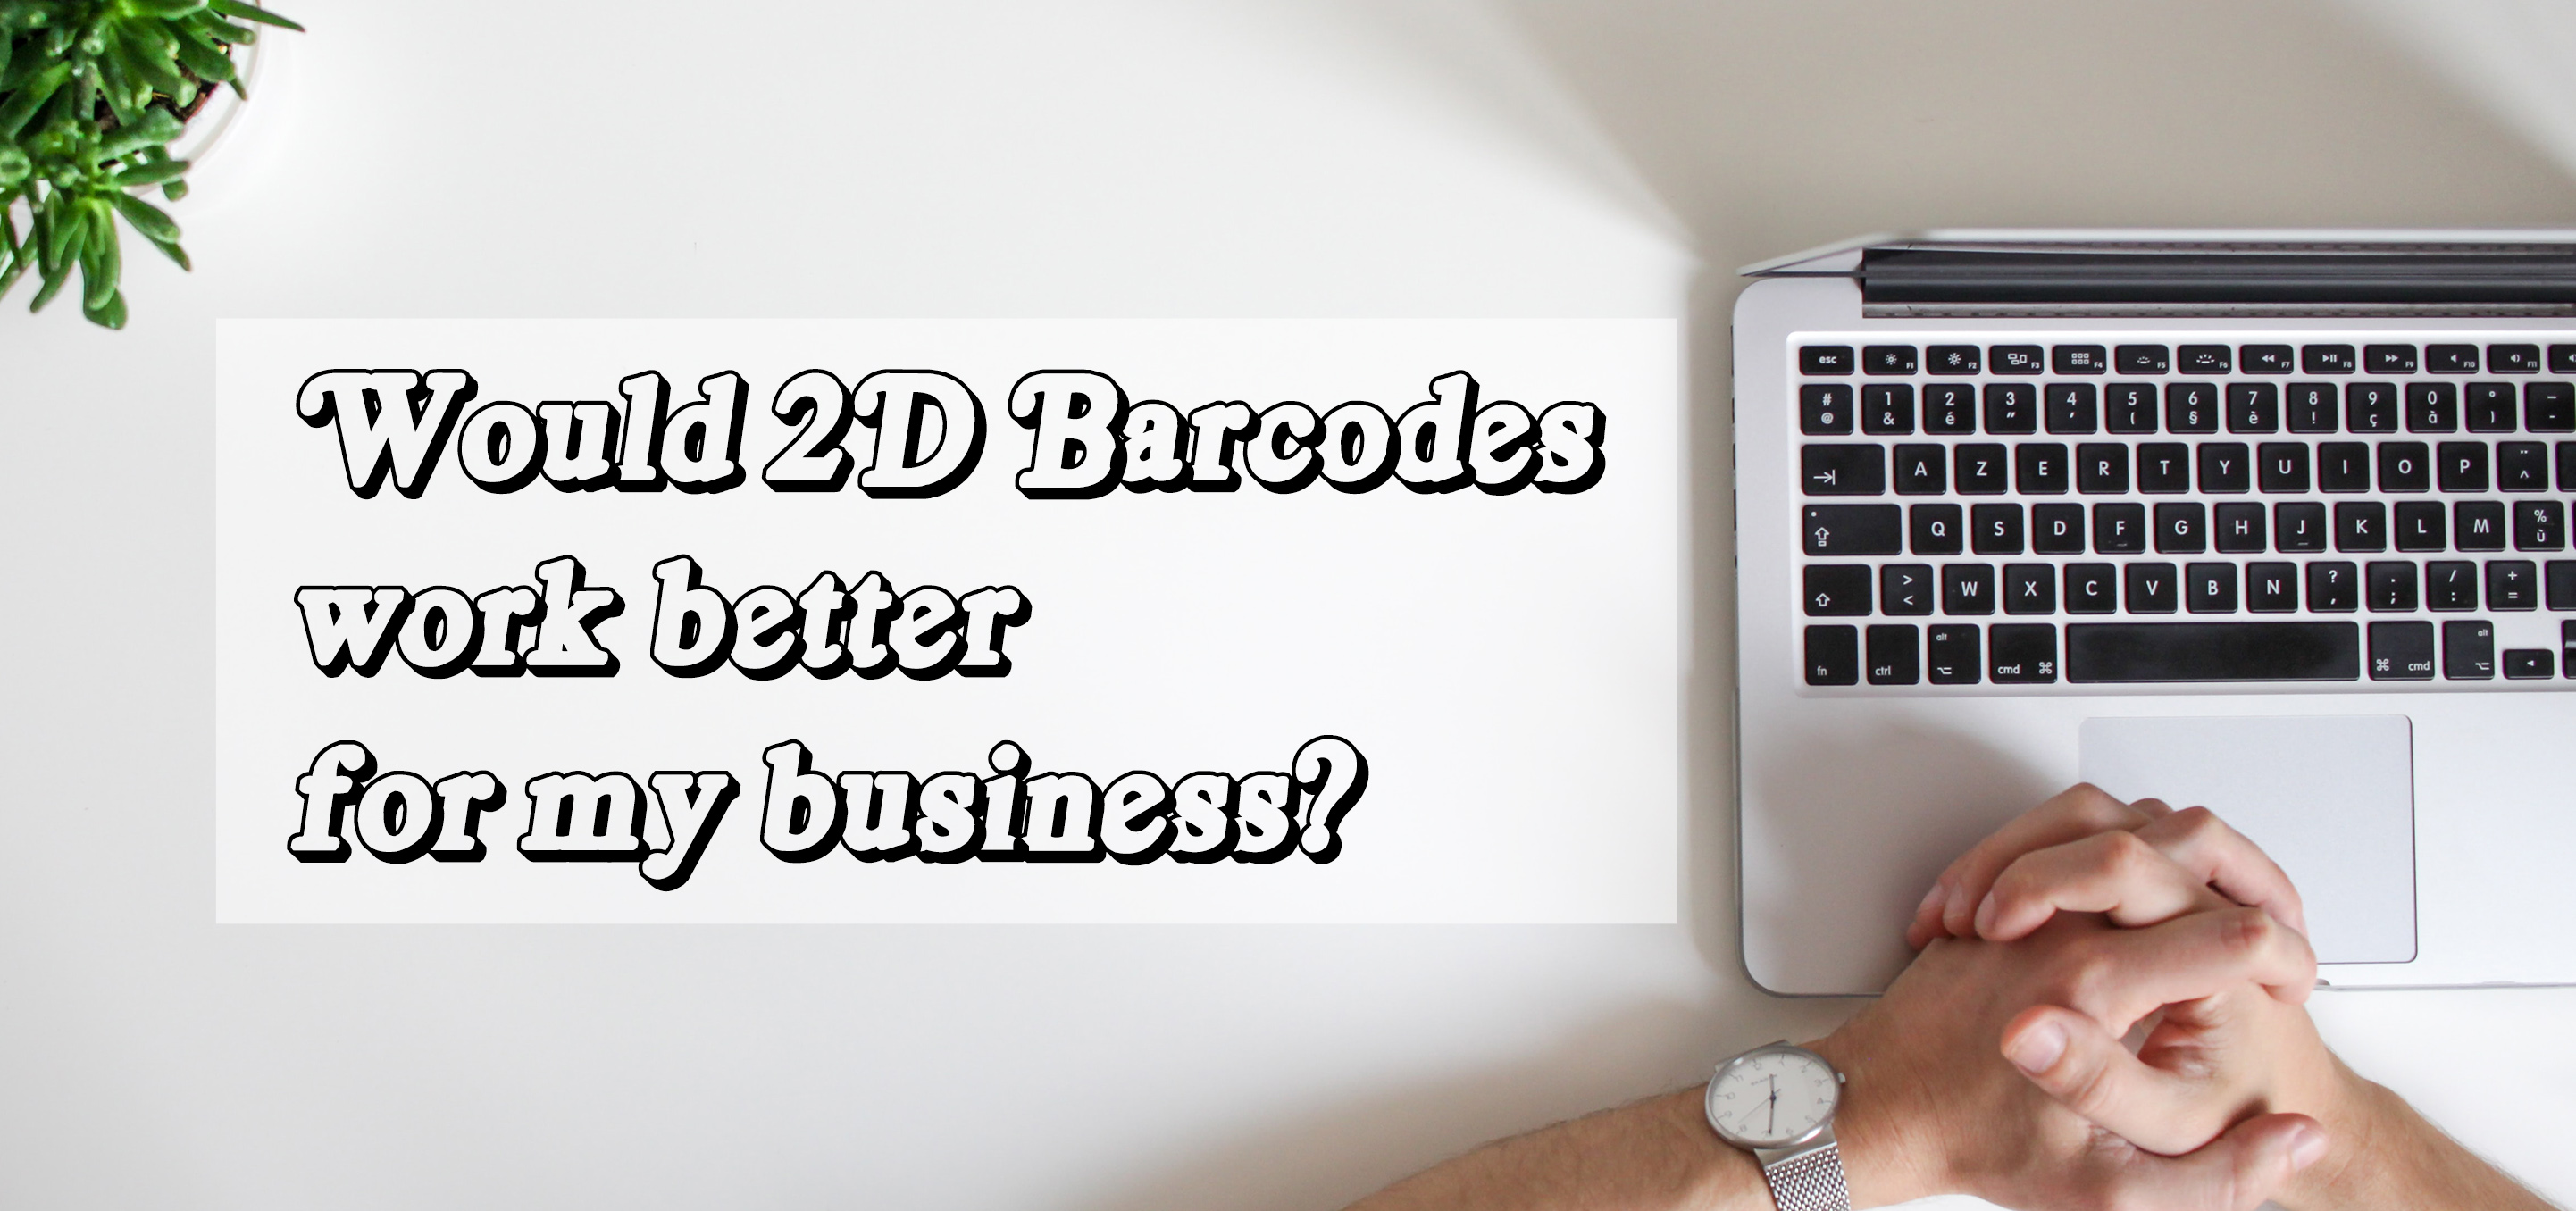 Would 2D Barcodes Work Better For My Business?